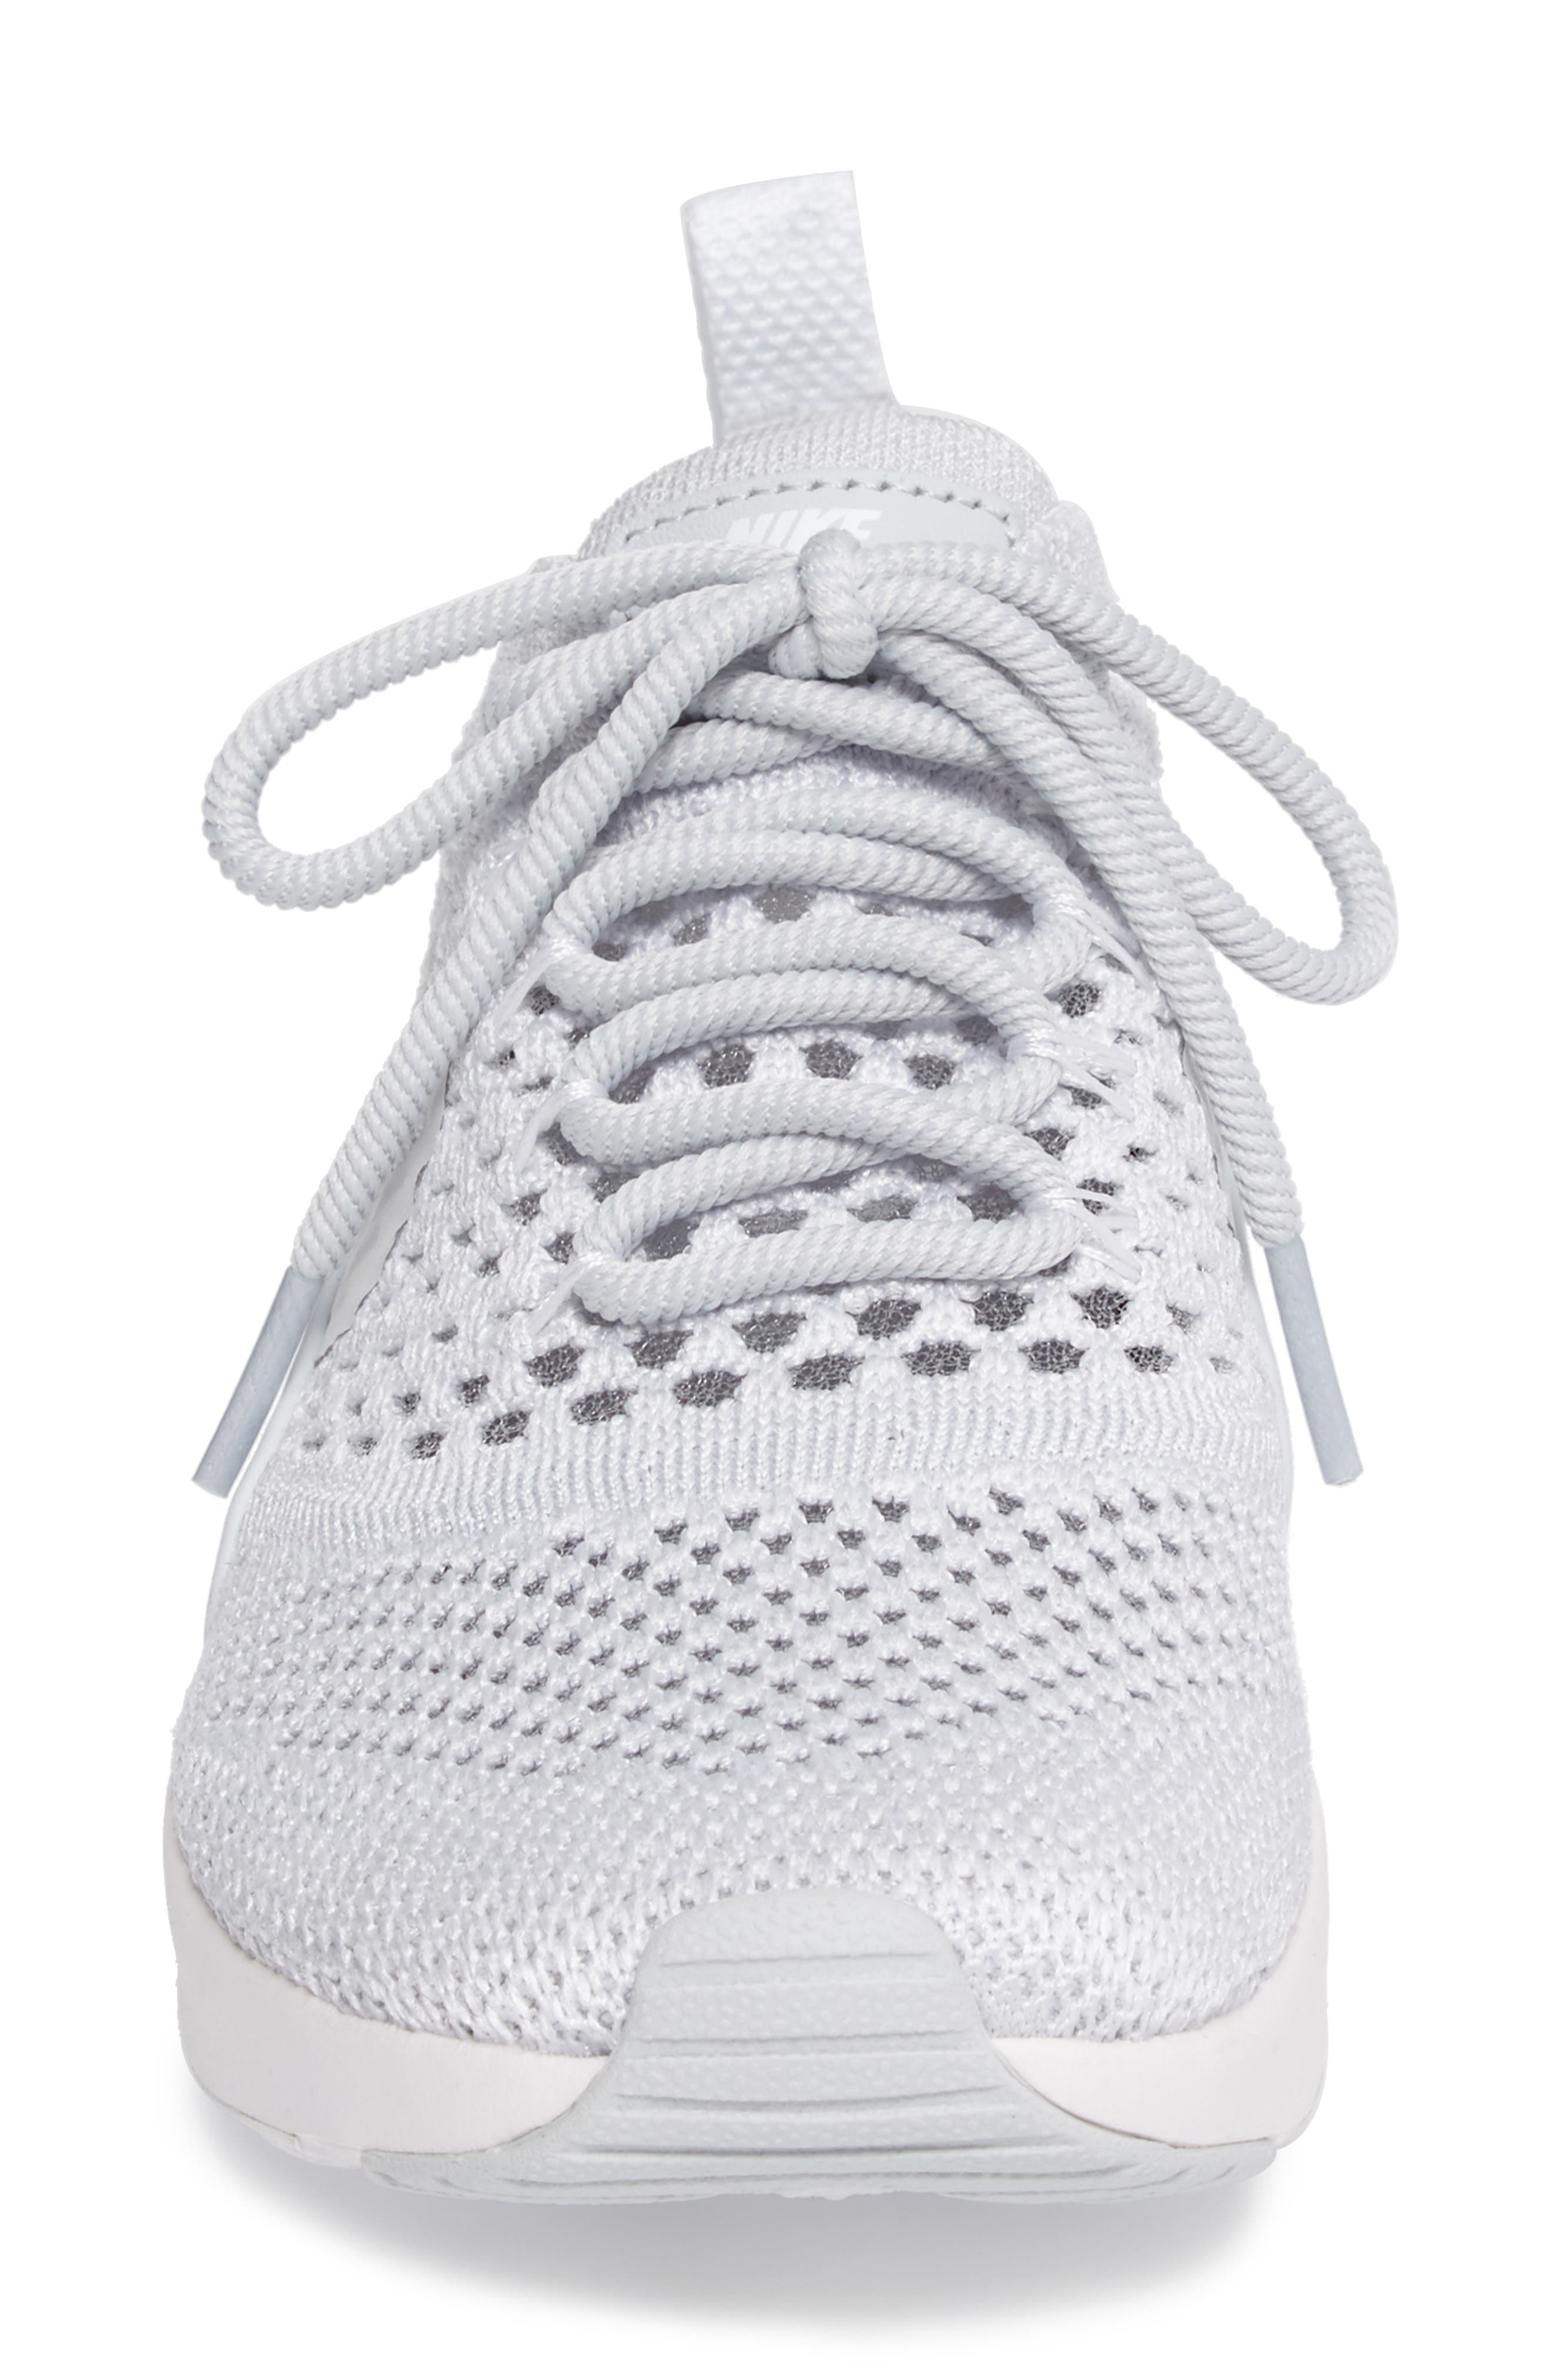 Air Max Thea Ultra Flyknit Sneaker,                             Alternate thumbnail 44, color,